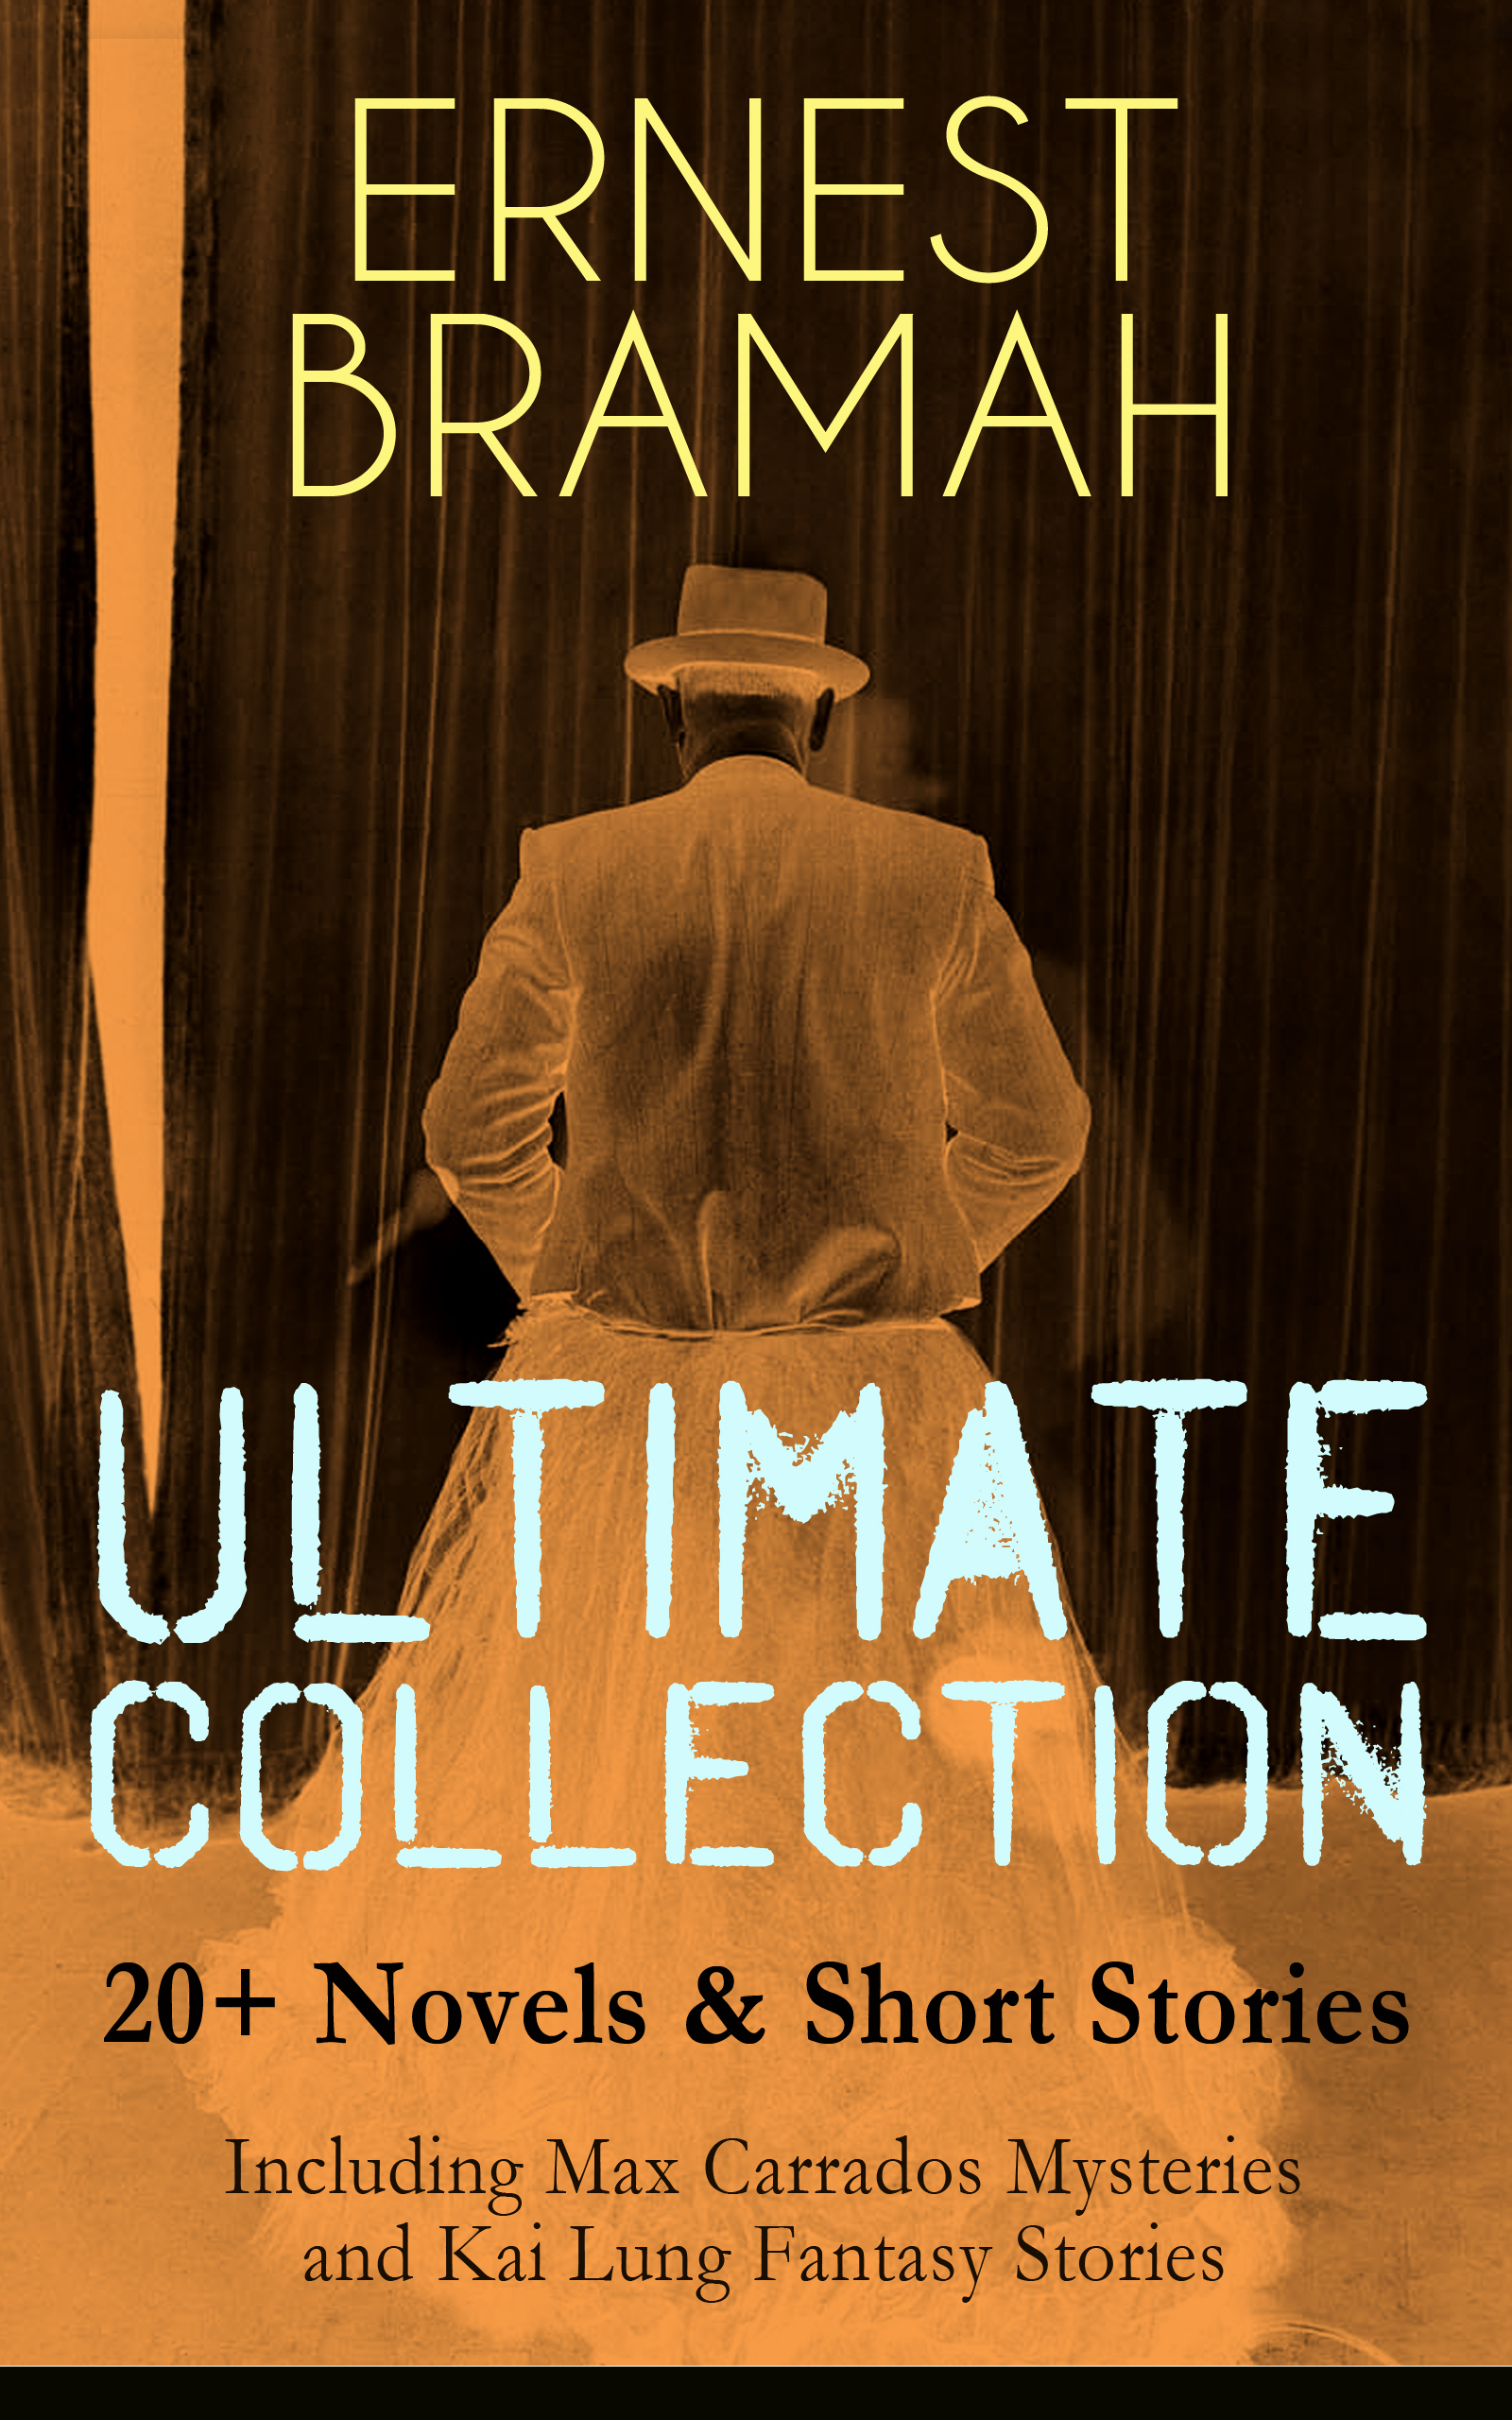 ERNEST BRAMAH Ultimate Collection: 20+ Novels #and# Short Stories (Including Max Carrados Mysteries and Kai Lung Fantasy Stories)